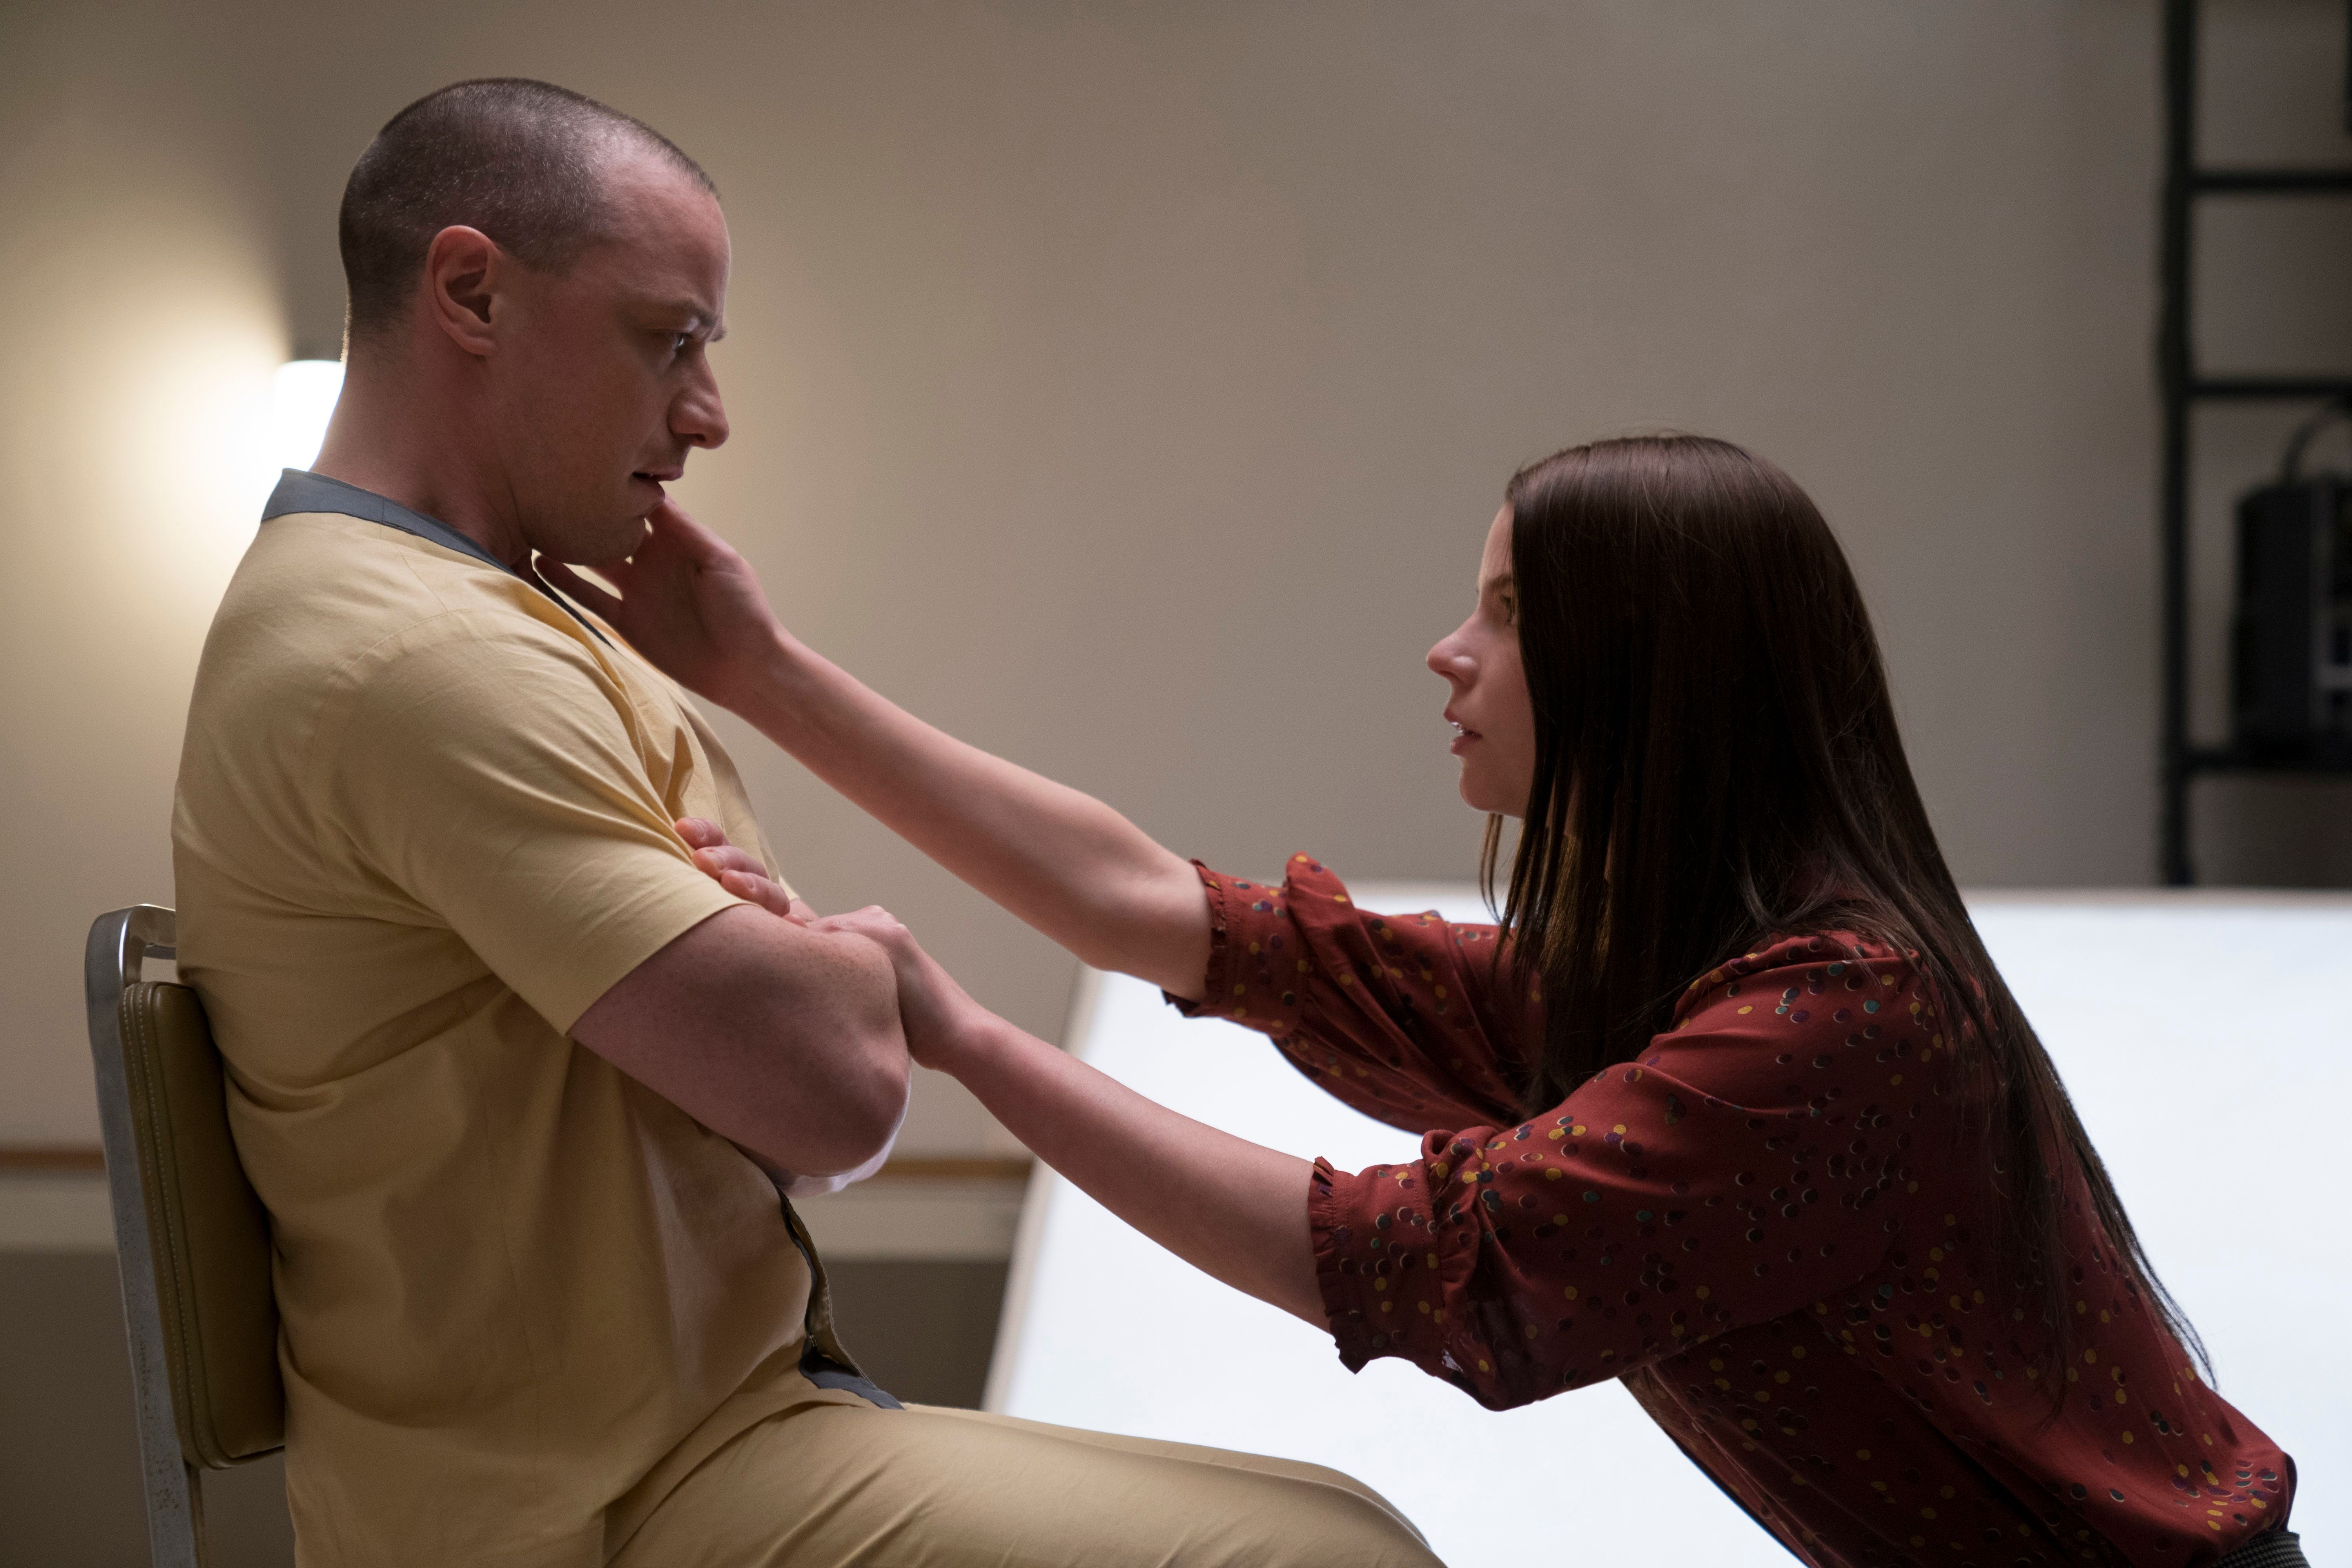 James McAvoy as Kevin Wendell Crumb/The Horde and Anya Taylor-Joy as Casey Cooke in 'Glass'